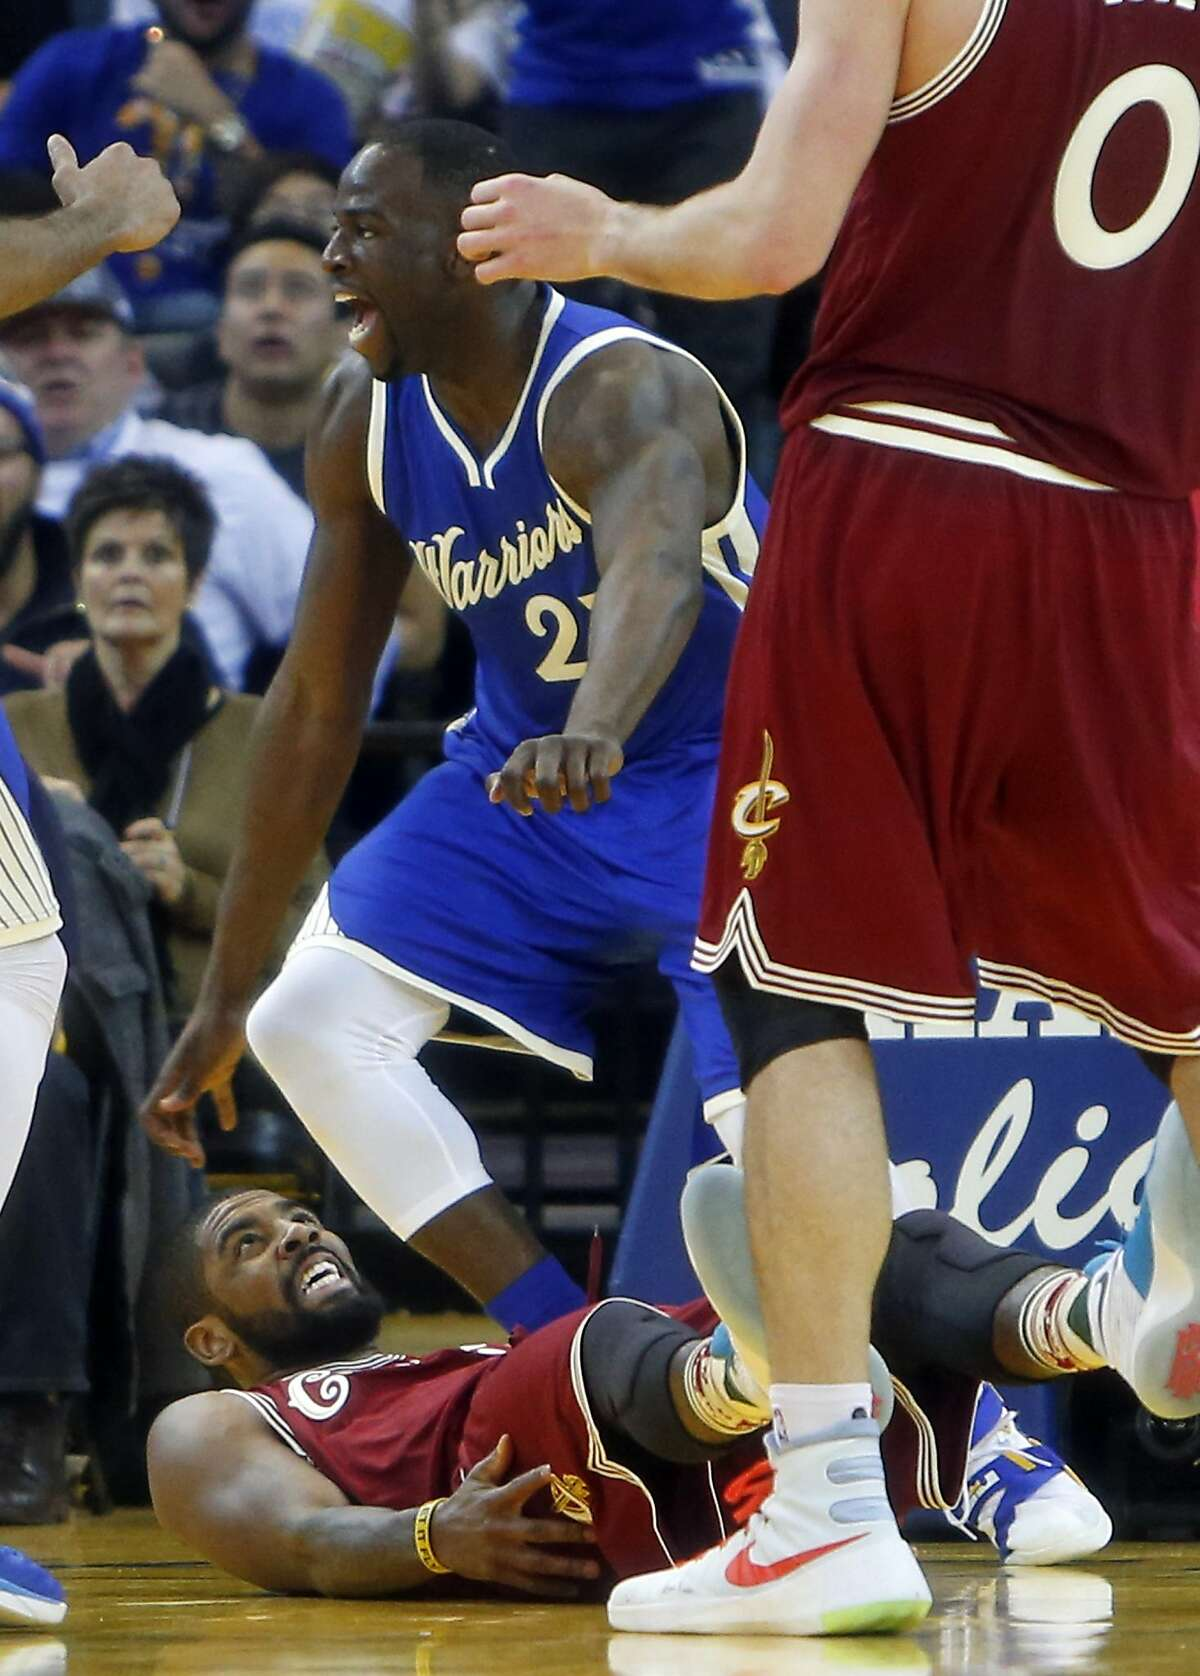 Golden State Warriors' Draymond Green celebrates a basket against Cleveland Cavaliers' Kyrie Irving in 4th quarter of Warriors' 89-83 win during NBA game at Oracle Arena in Oakland, Calif., on Friday, December 25, 2015.